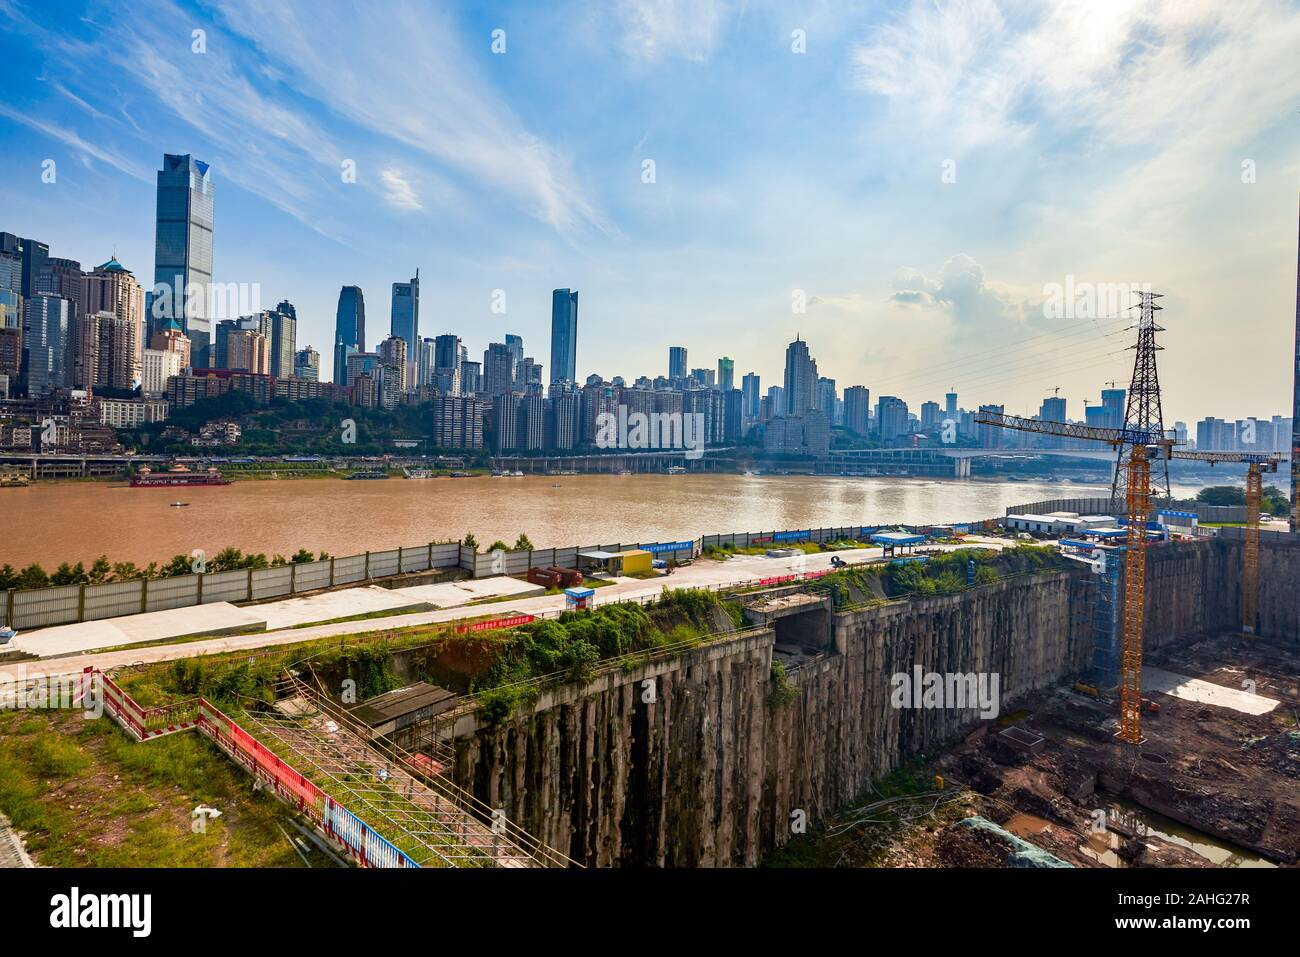 High-rise buildings and construction sites along the Yangtze River in Chongqing Stock Photo